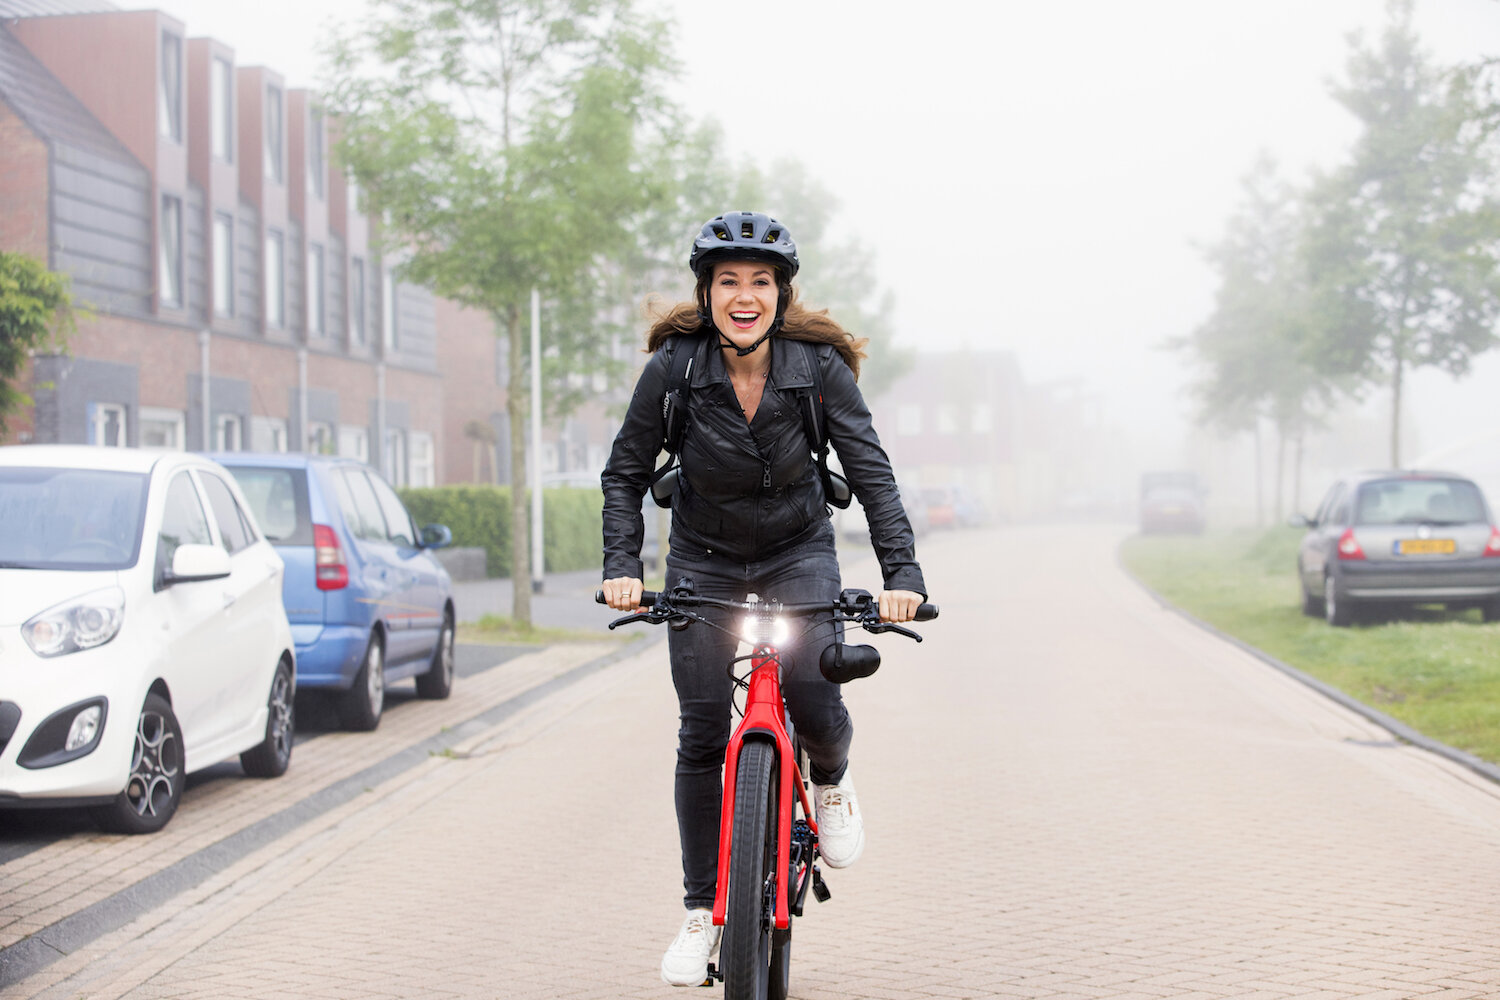 8 Things To Love About Electric Bikes